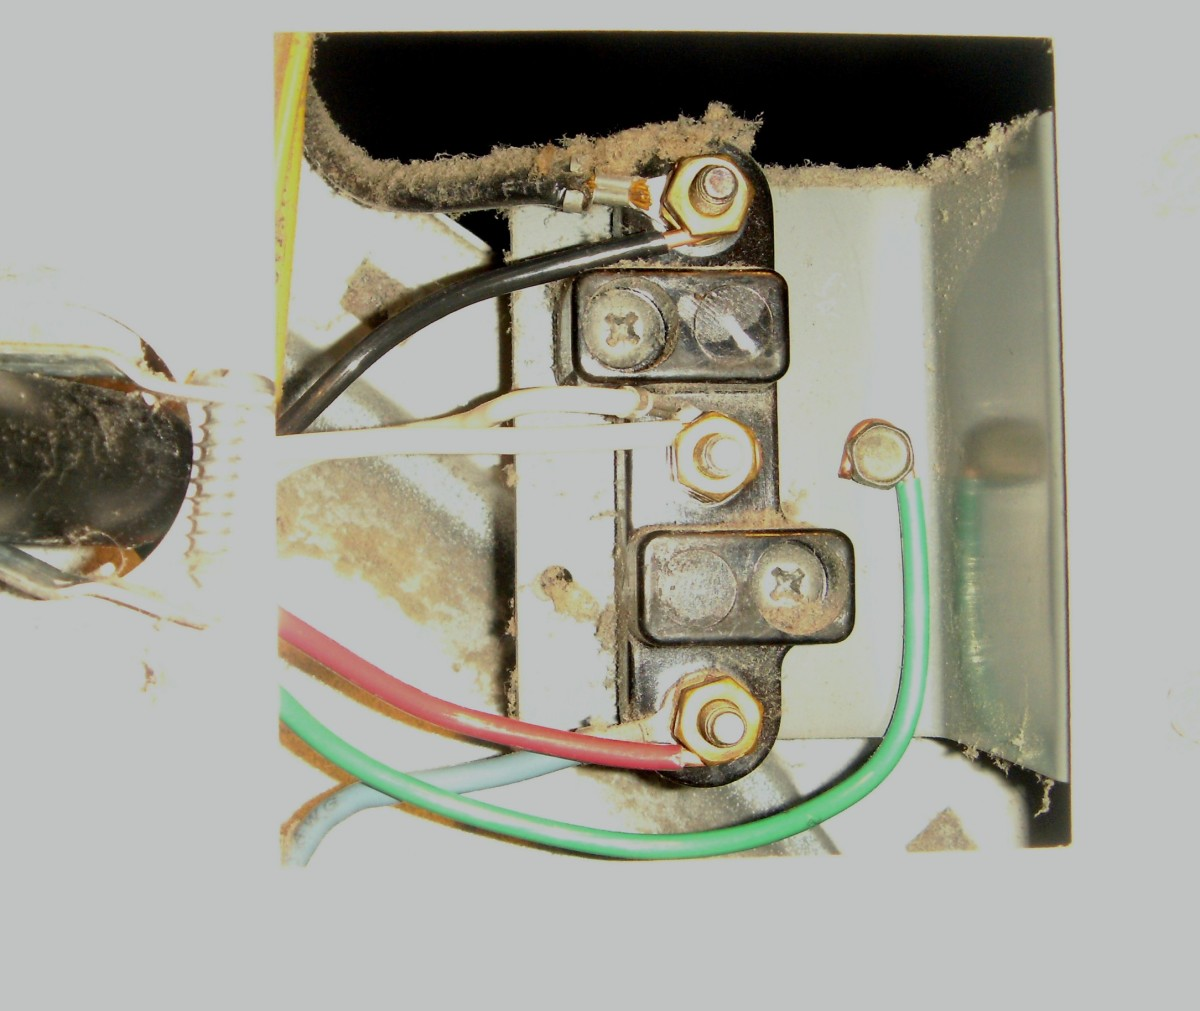 Changing A 3 Prong Dryer Plug And Cord To A To 4 Prong Cord Dengarden Home And Garden